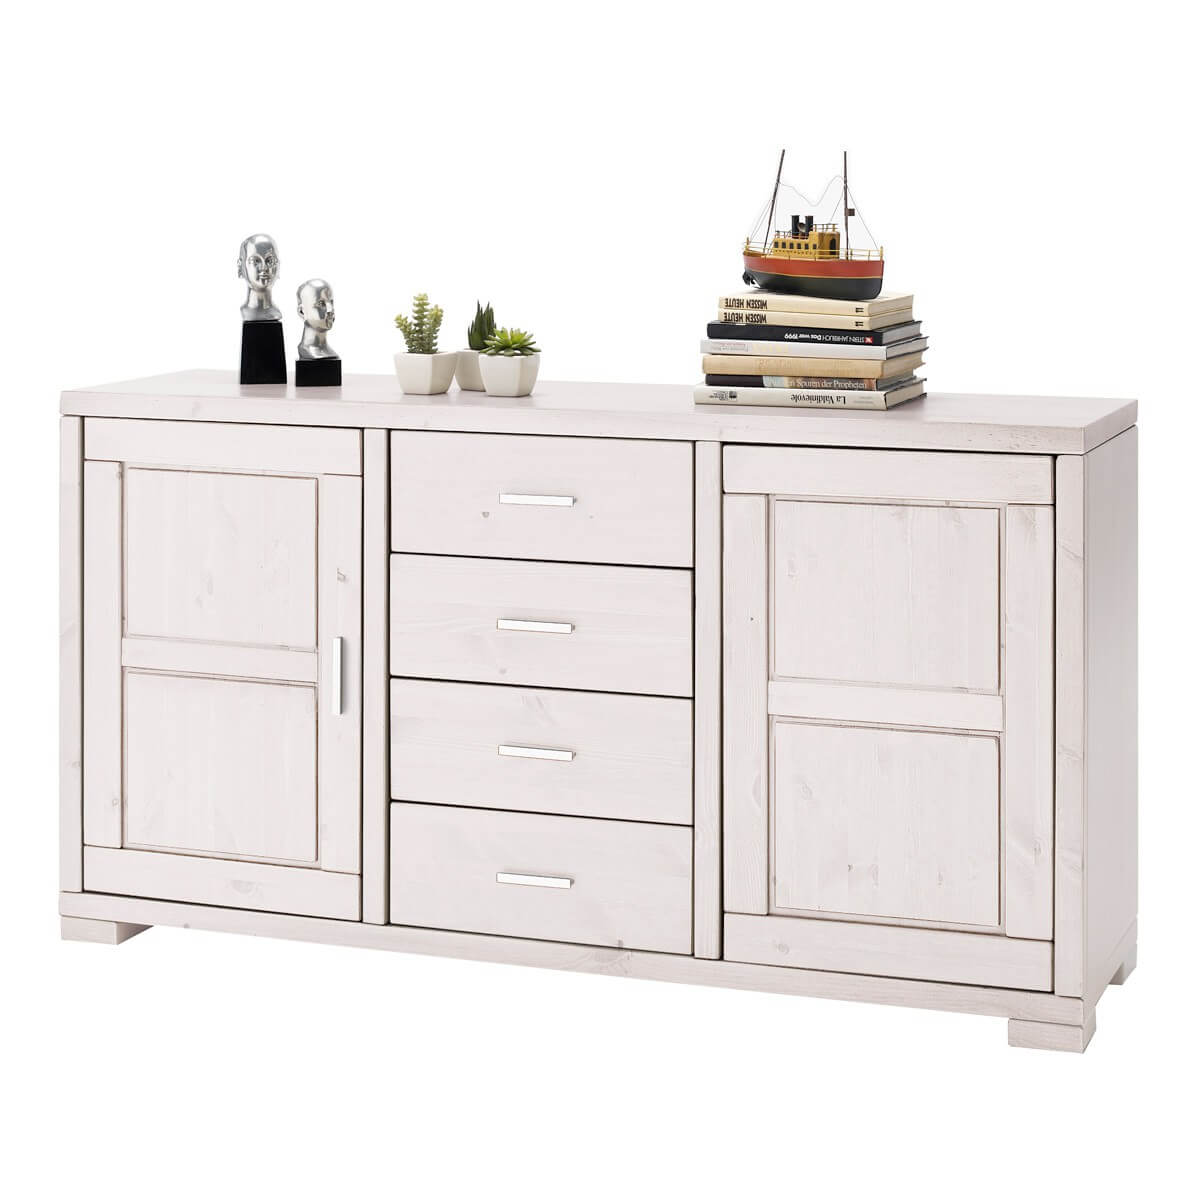 Esszimmerschränke Landhausstil Sideboard Madison In Kiefer Massivholz Weiß